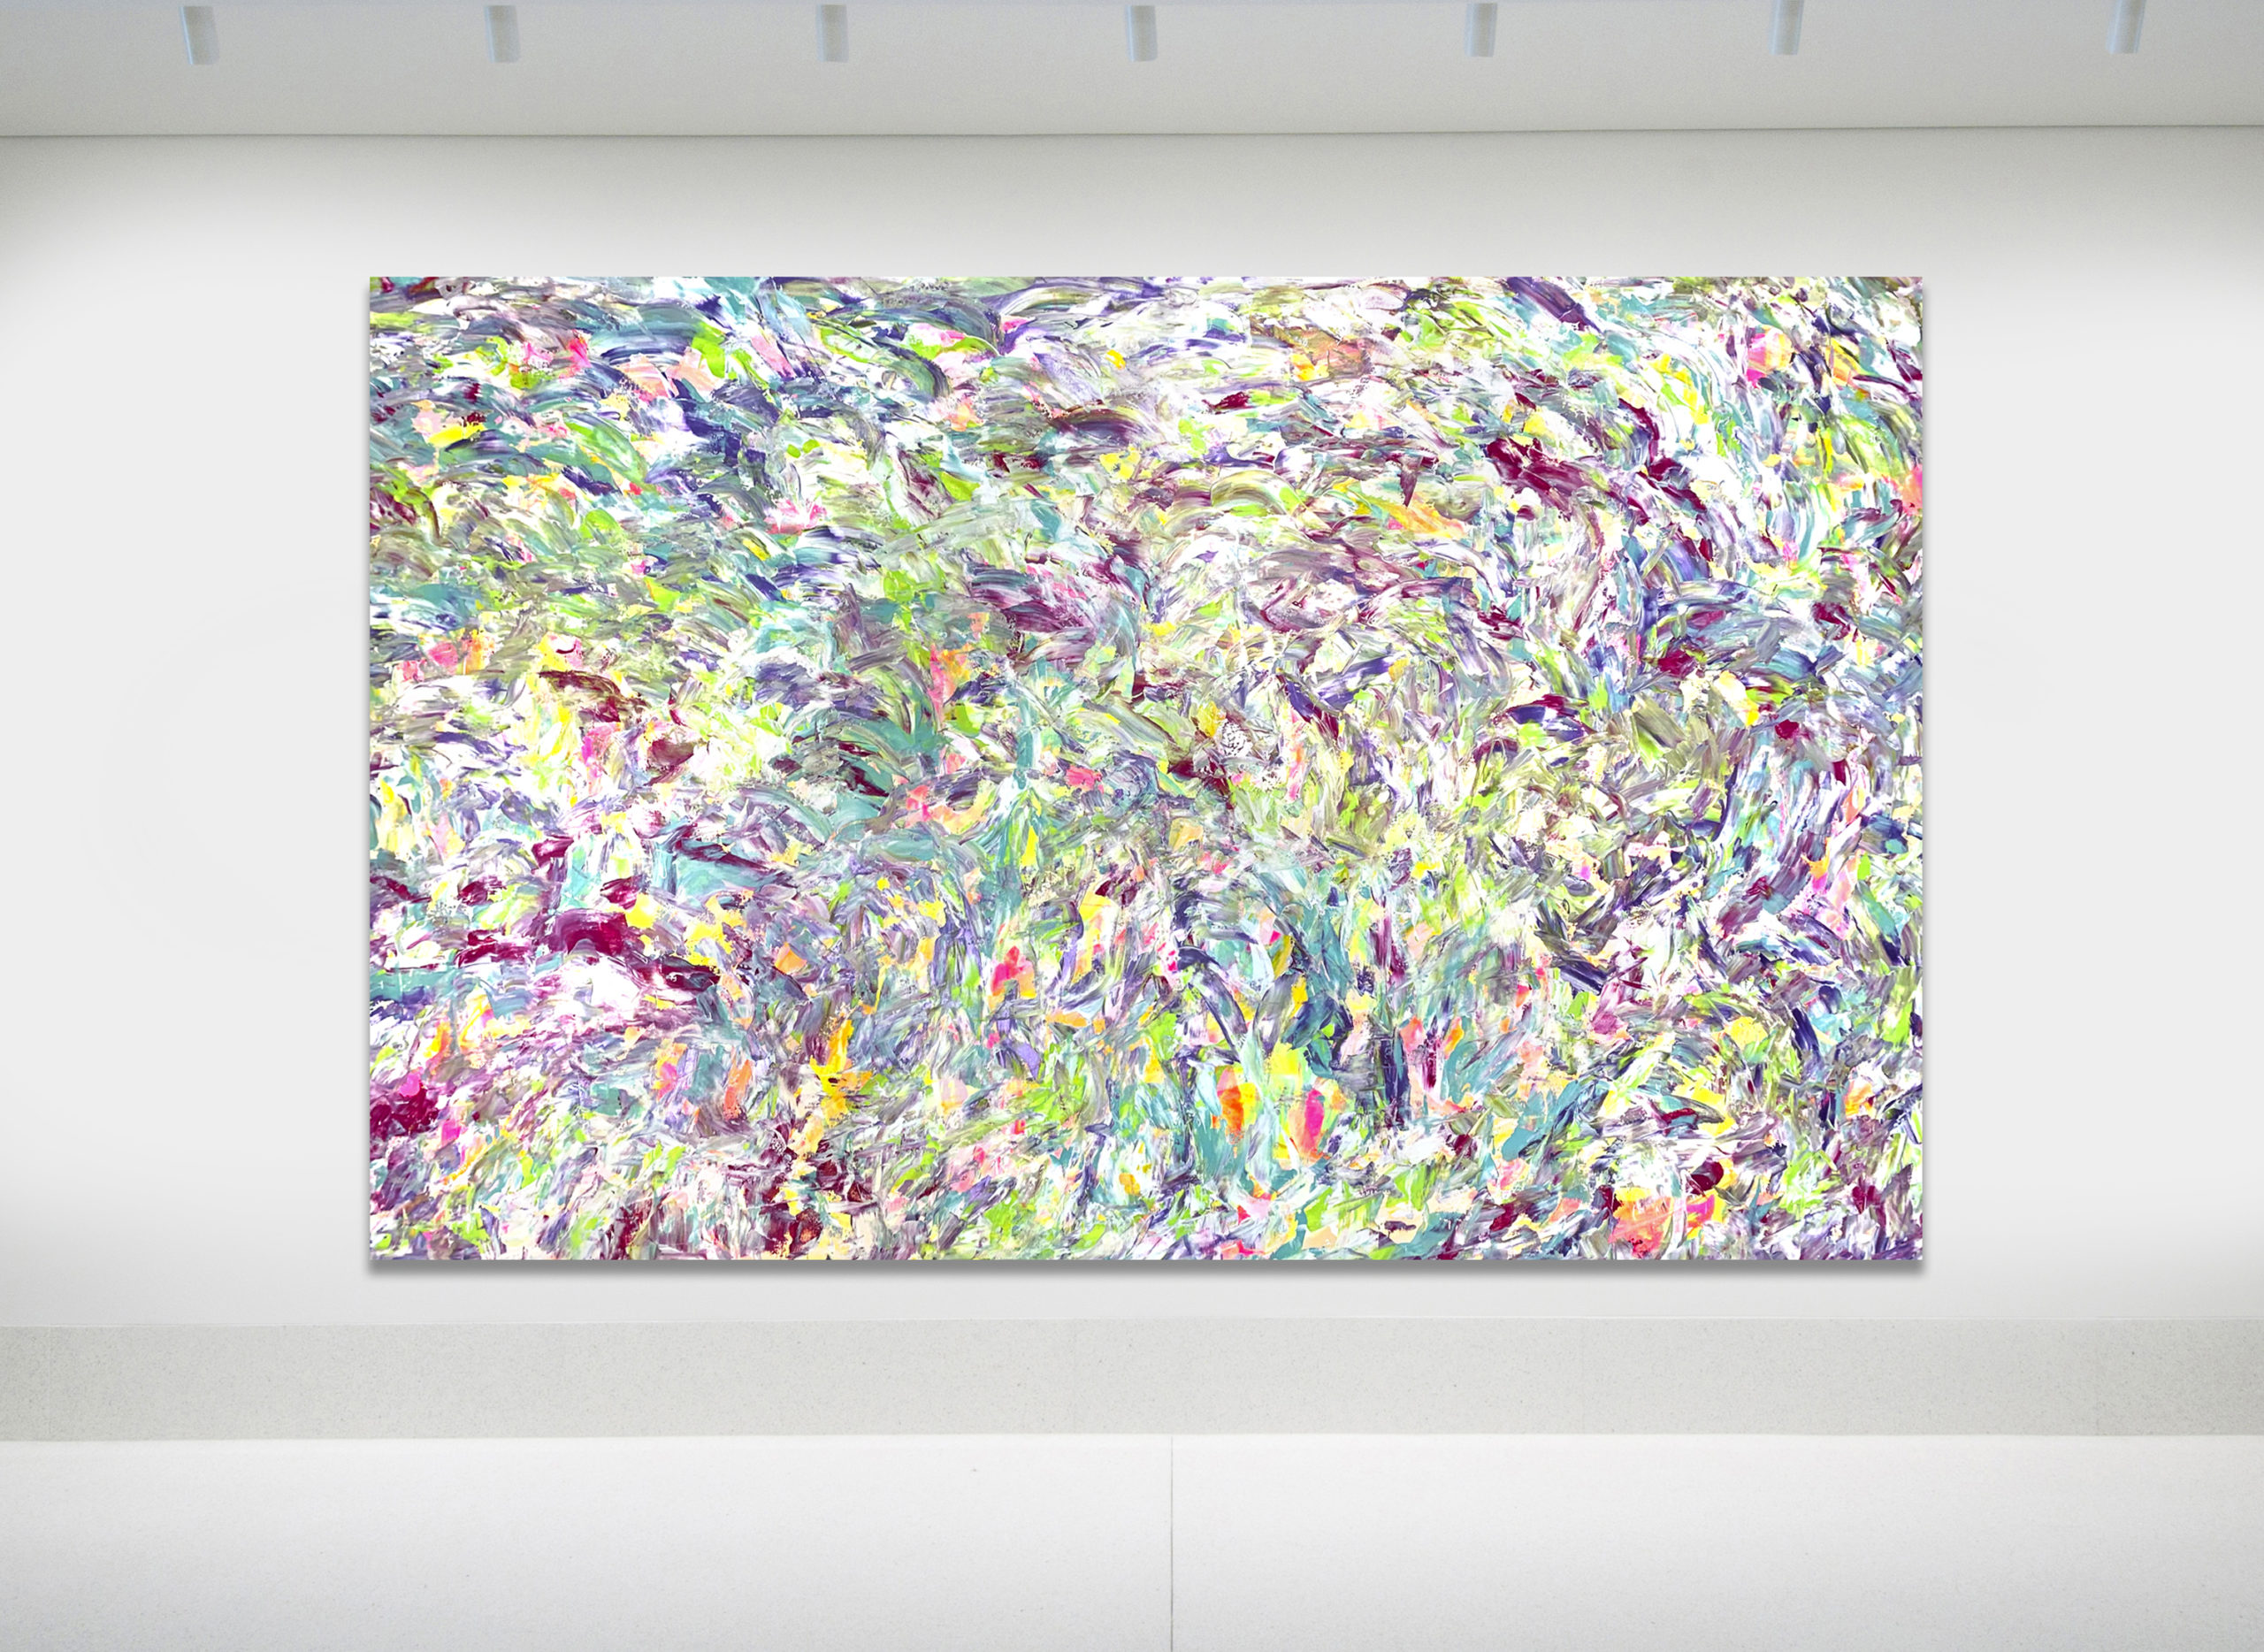 Move with you - Abstract Expressionism by Estelle Asmodelle